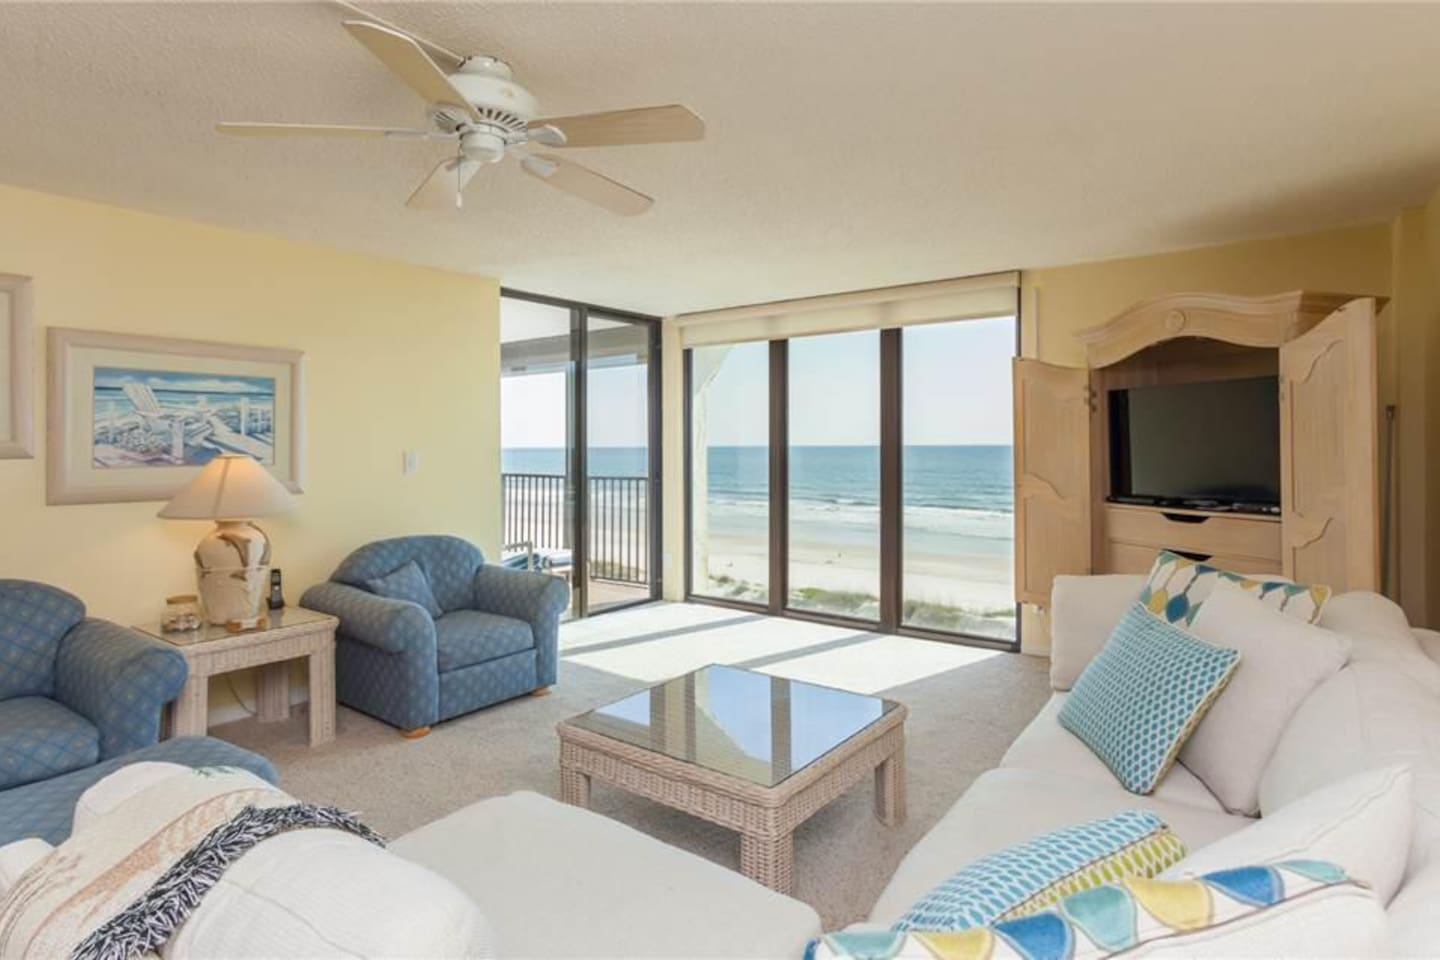 Brand new and silver rated! - Enjoy fantastic quality and a great-value family vacation at Sand Dollar I 504 on Crescent Beach.